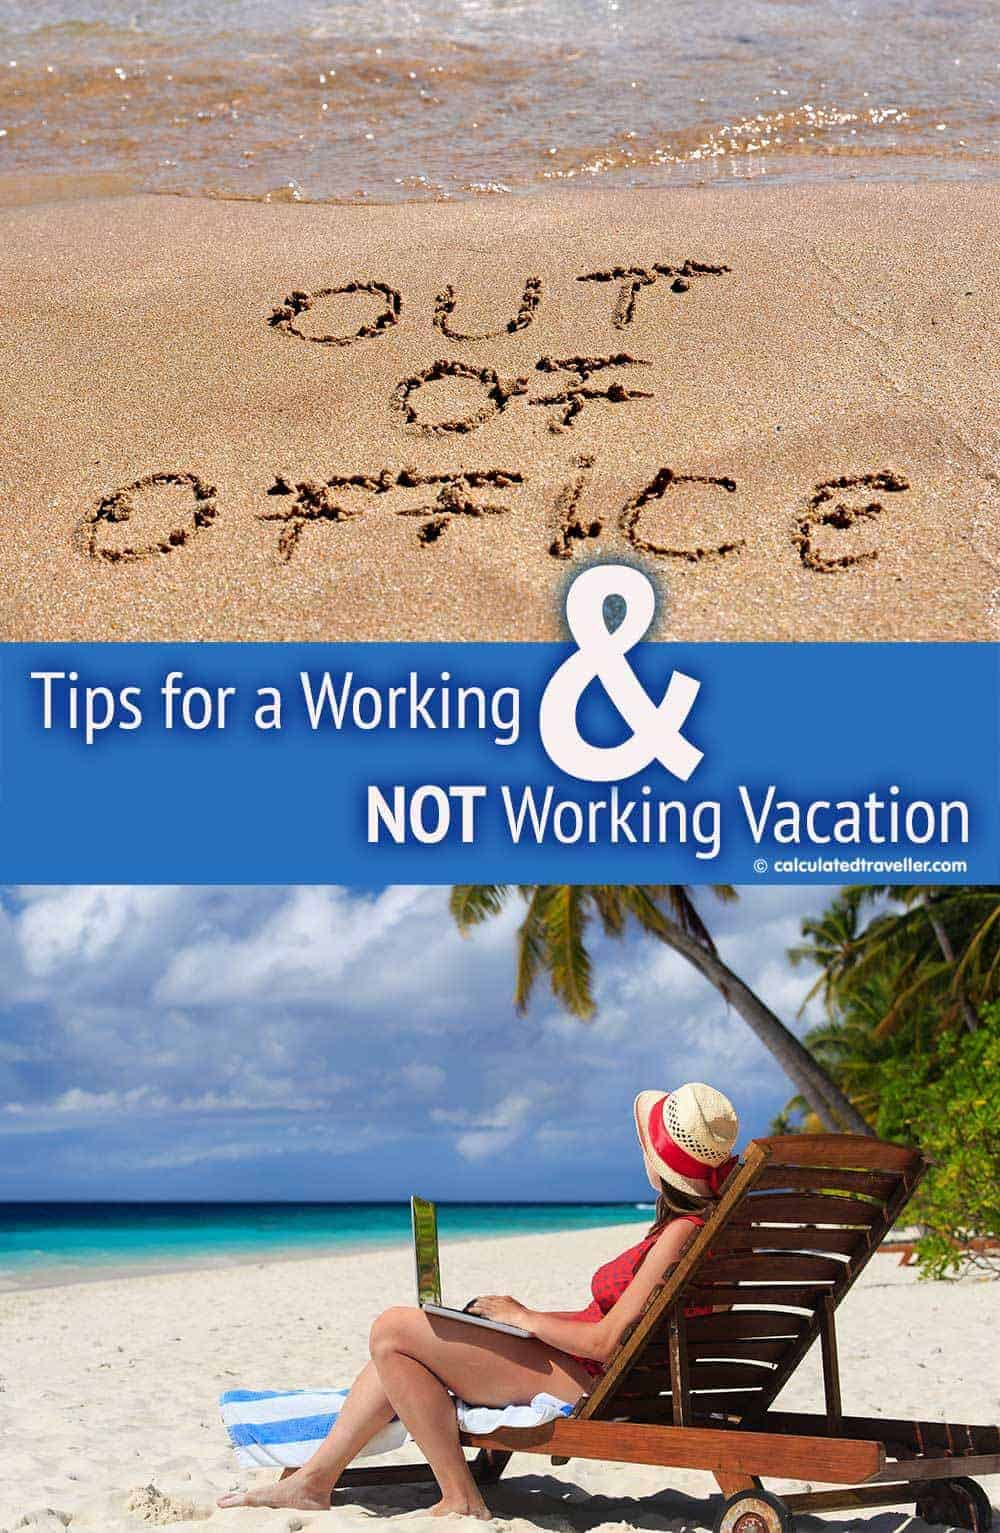 Tips for a Working (and NOT Working) Vacation by Calculated Traveller